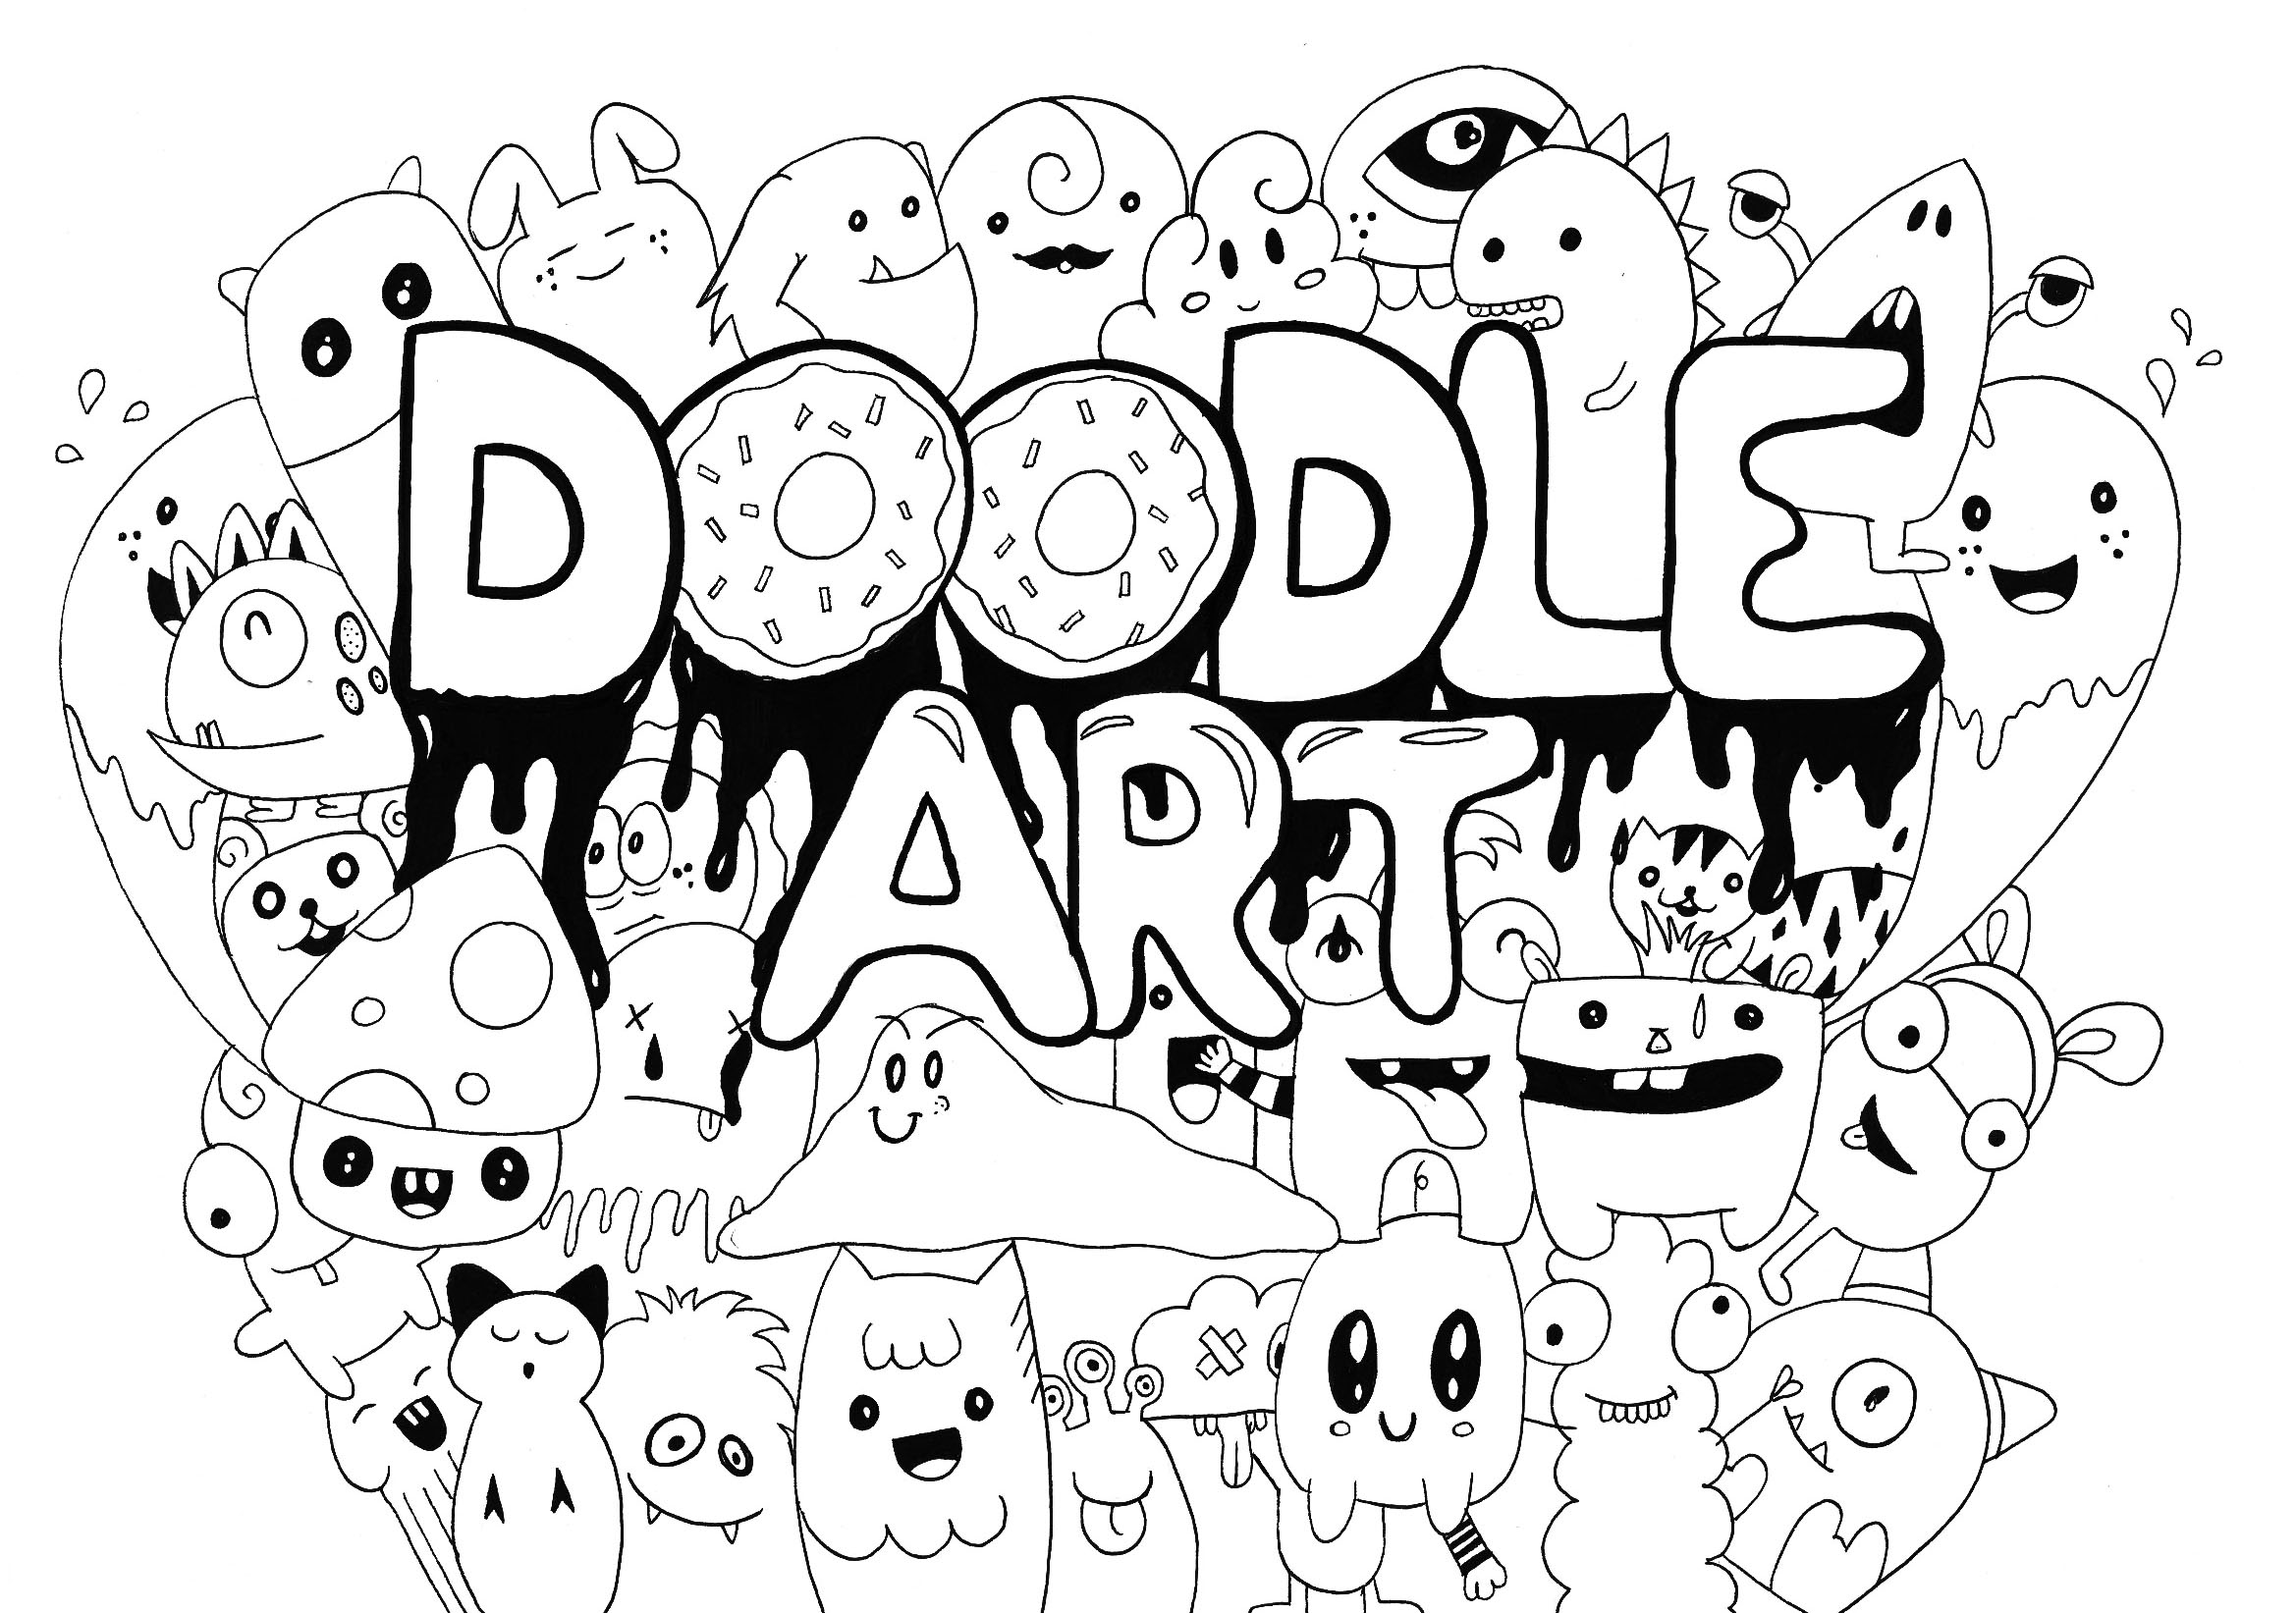 Simple doodle art coloring page for kids